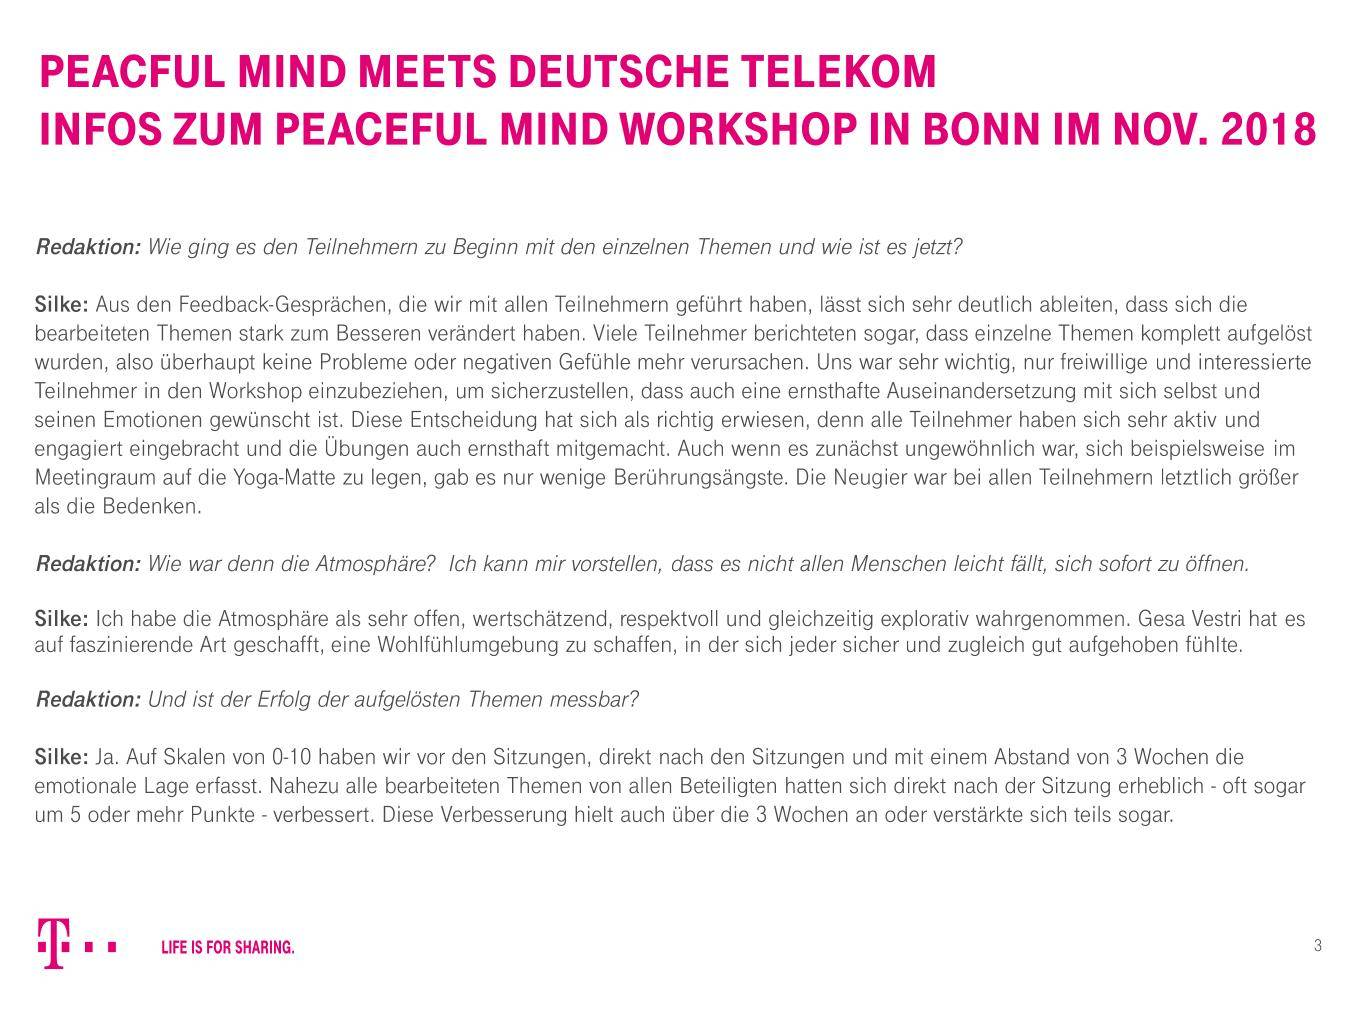 Peaceful Mind Workshop Dt Telekom3